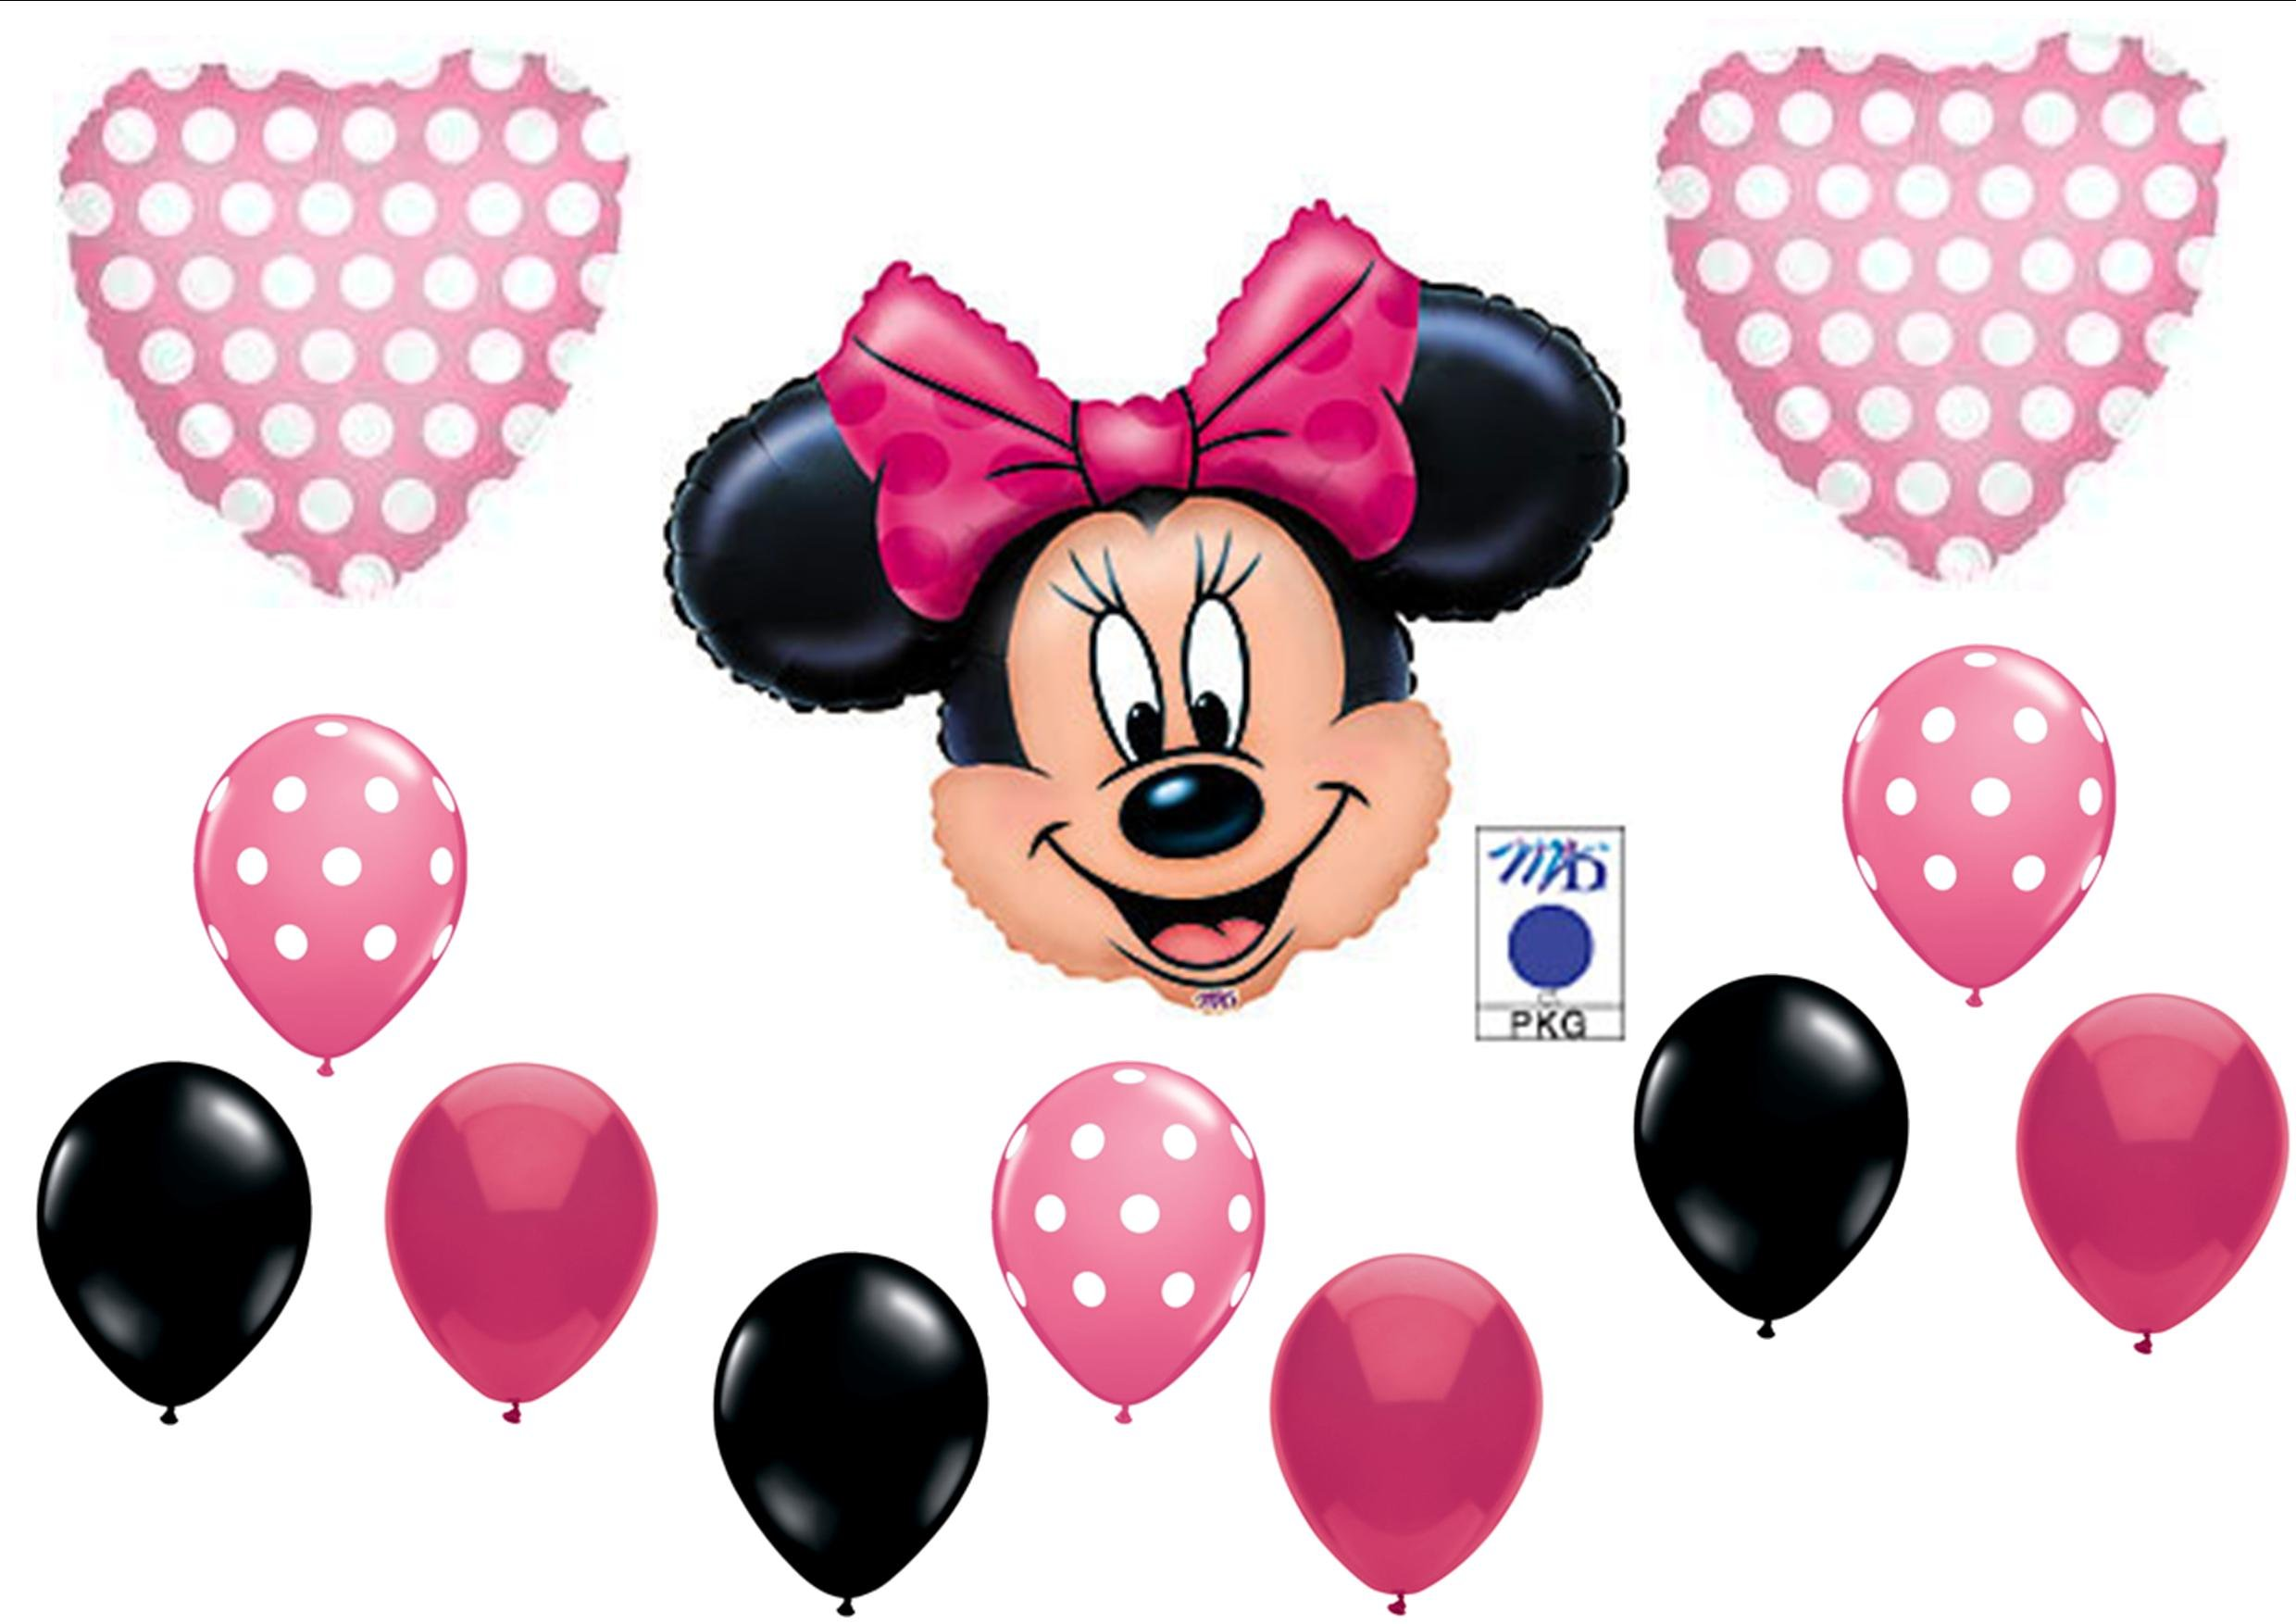 Amazon PINK MINNIE MOUSE BIRTHDAY PARTY Balloons Decorations Supplies By Anagram Toys Games